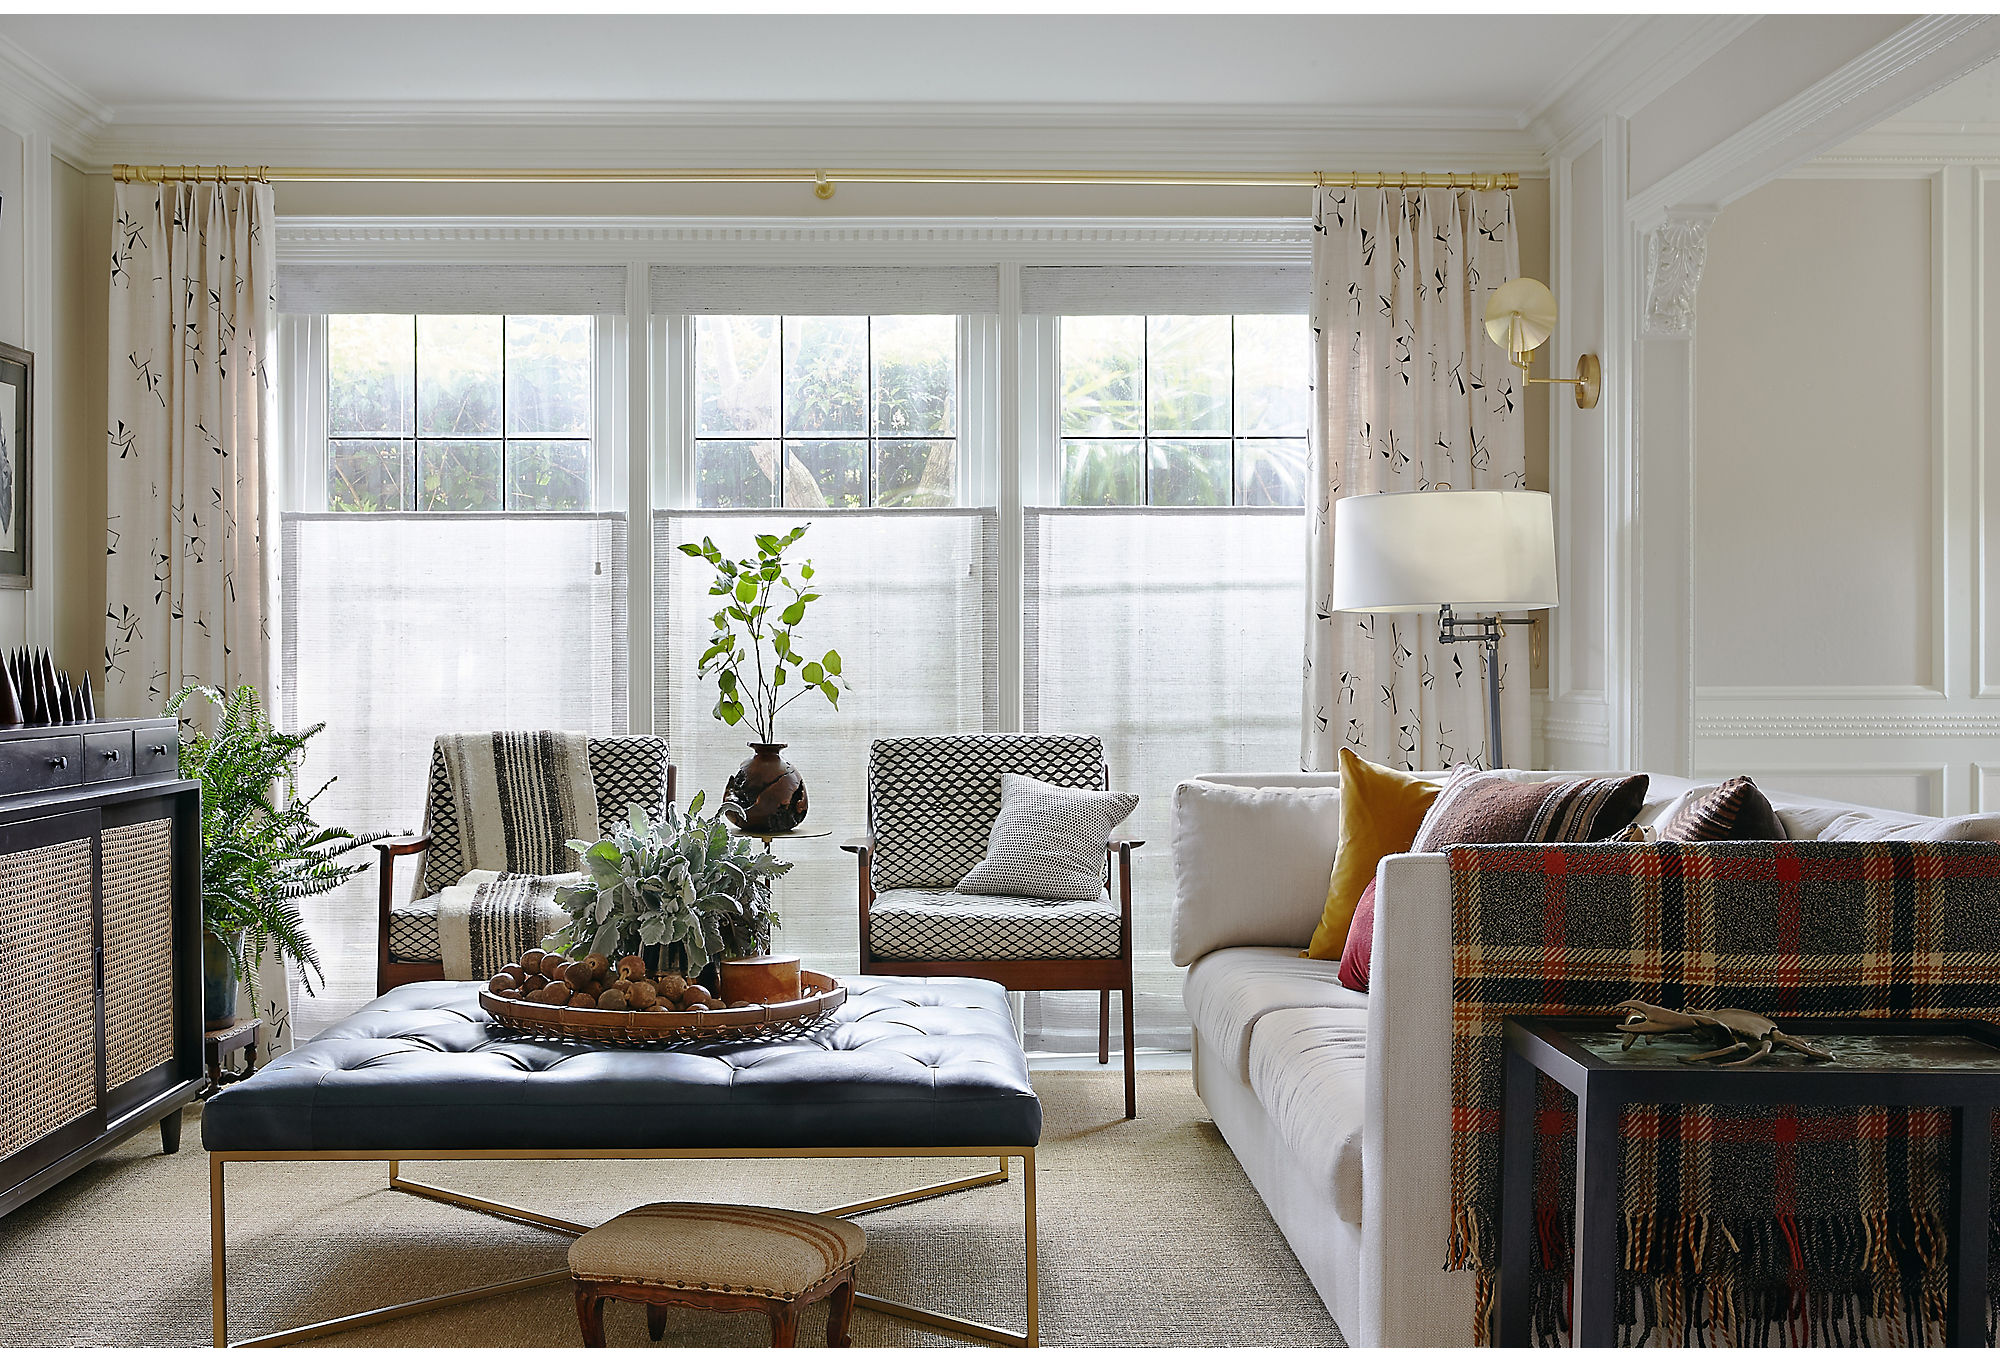 The family room went neutral in color but poppy in pattern. Lynn kept things low-key by choosing creams and whites but complemented the color withinviting patterns on the drapes and accent chairs.